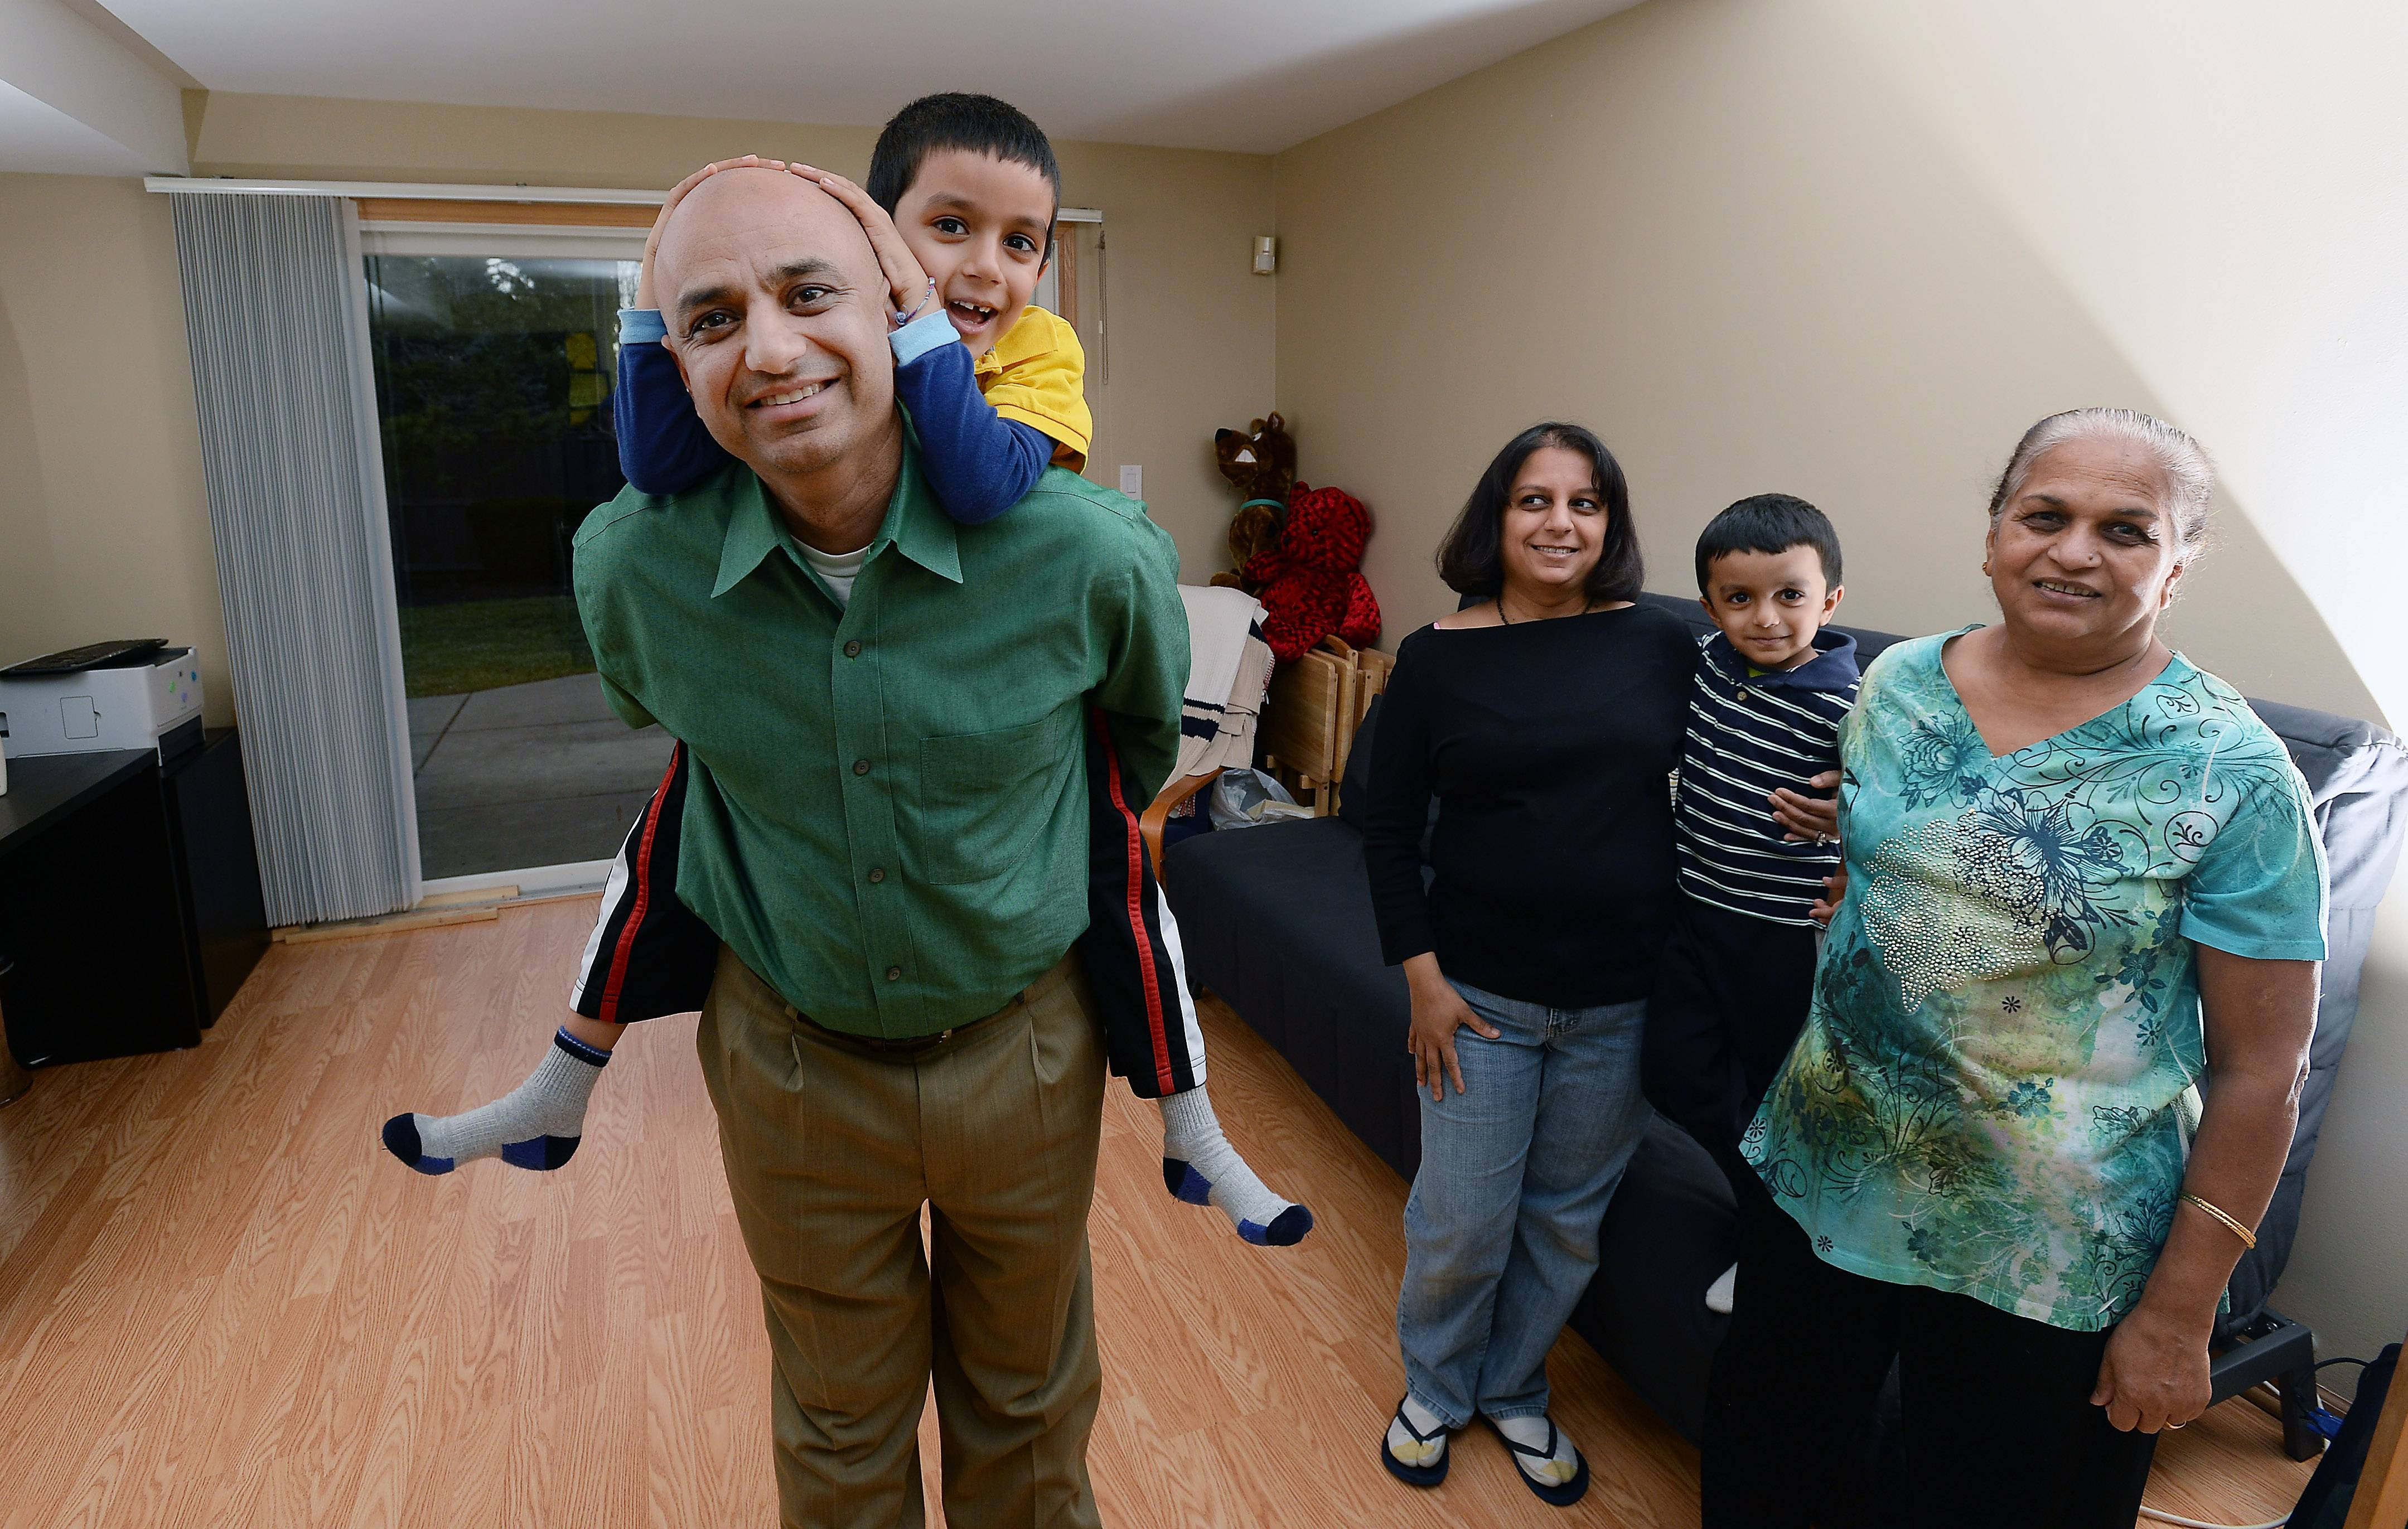 The Bhatt family of Mount Prospect love their new multigenerational home. Jaydip and his wife Devyani, center, live with Devyani's mother, Lili Patel, right, as well as their two kids, Raveen, 6, (on his dad's back) and Jushnn, 4.